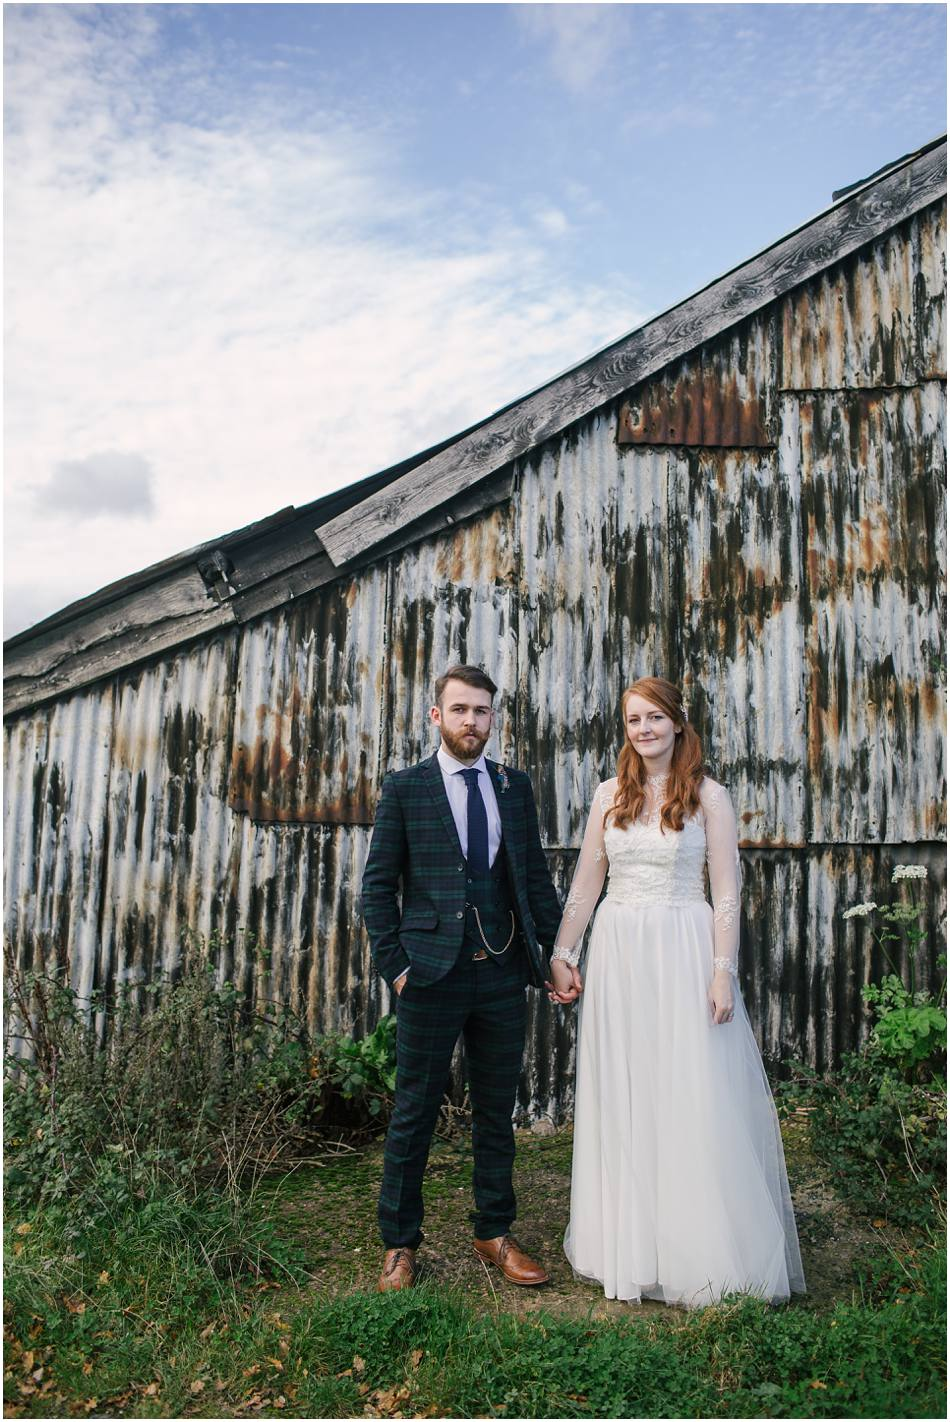 Curradine Barns wedding photography; Bride and Groom infront of corrugated metal shed